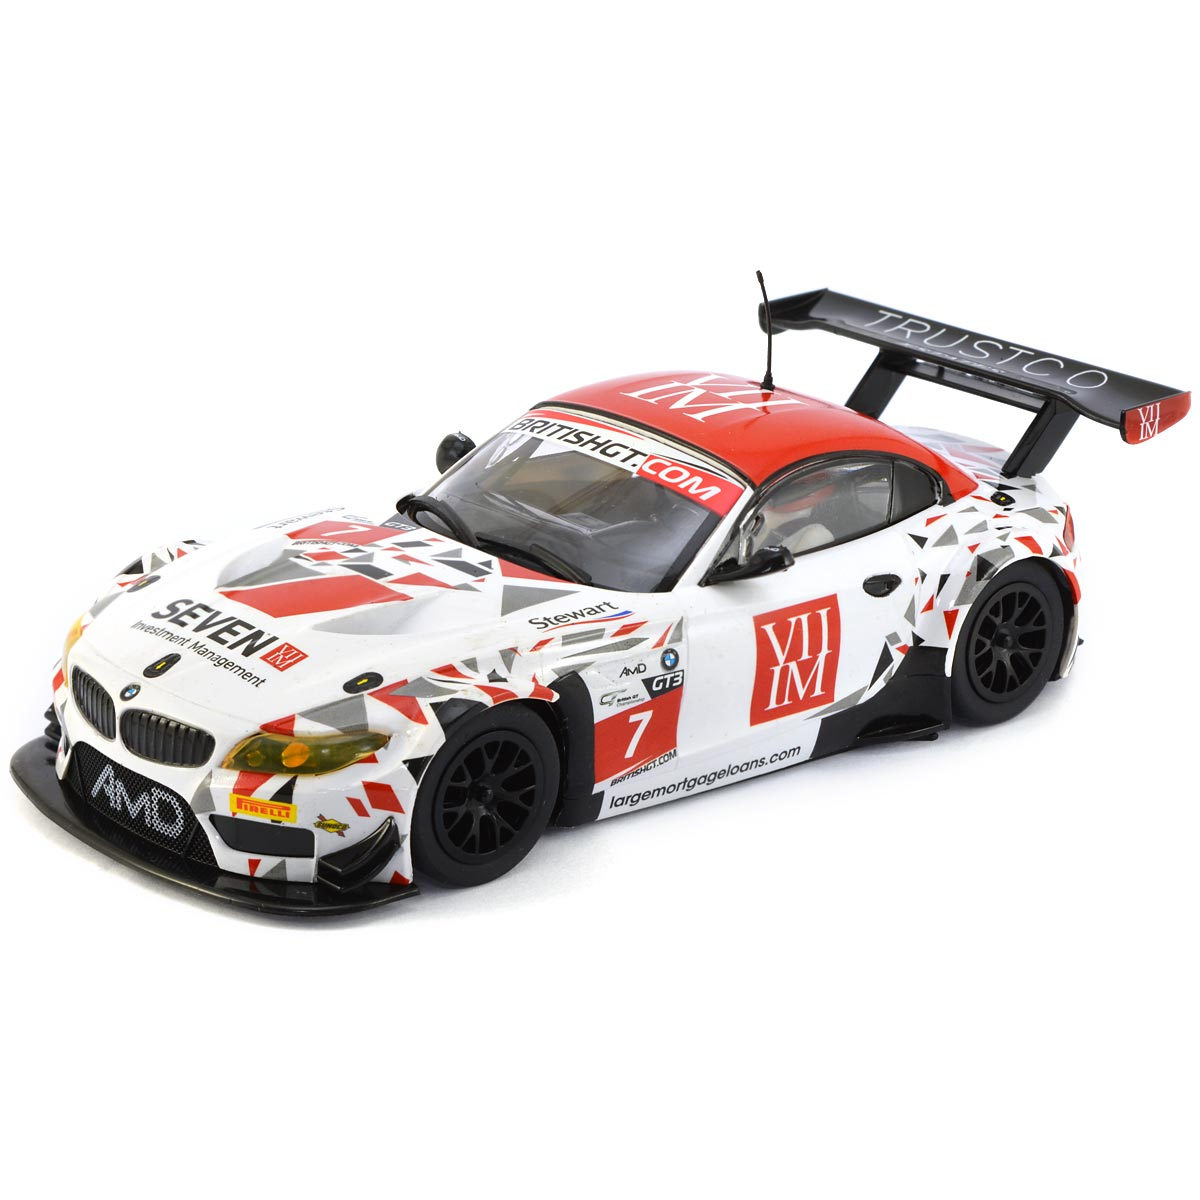 Bmw Z4 Used Cars: Scalextric BMW Z4 GT3 No.7 AMD Tuning (C3848